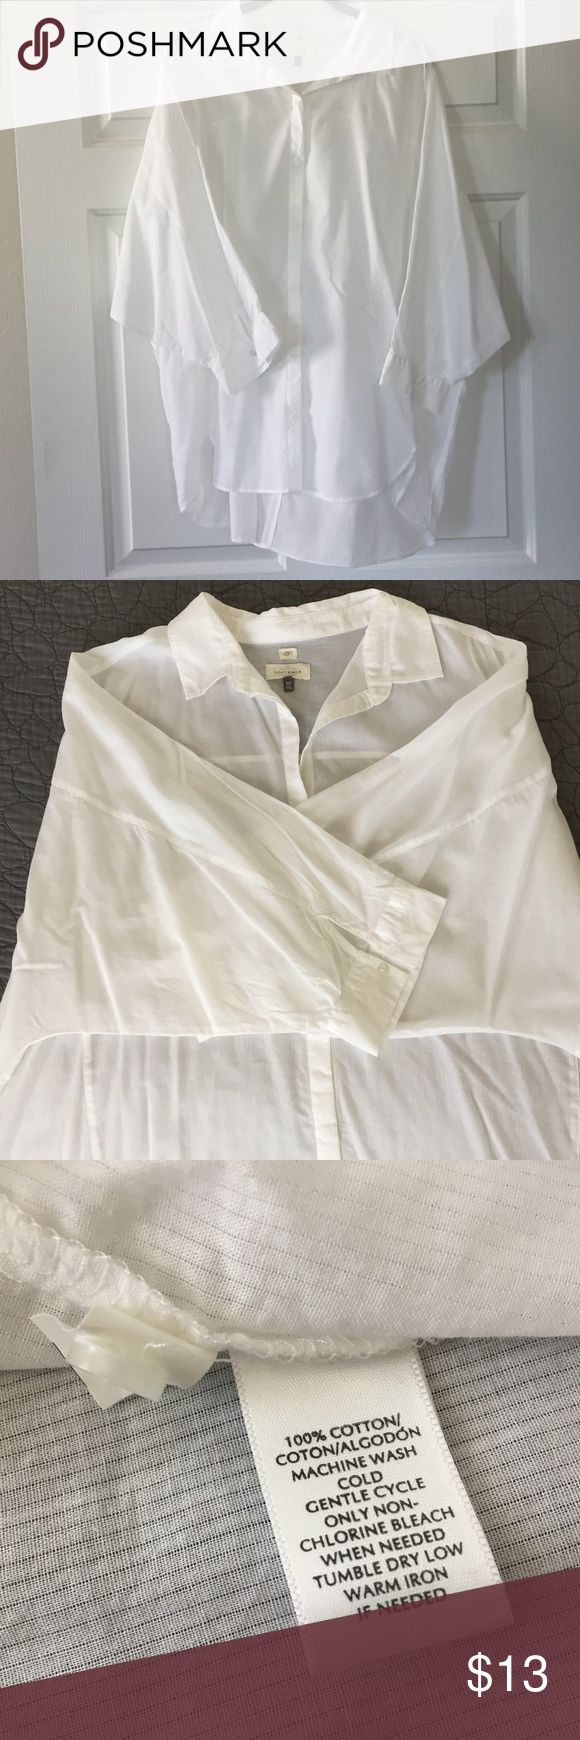 """Ann Taylor Loft The Softened Shirt in white Ann Taylor Loft The Softened Shirt in white. Semi Sheer 100% cotton button down shirt with dolman sleeves and shirt tail hem. This is like new- never worn- would be cute as a top tied up with jeans or even as a bathing suit cover up!  Size XXL- approx. measurements 30"""" long Front, 33"""" long in back.   CA 57421, RN 140923, Style 364867-  Machine Wash.   Non-Smoking/Pet Free Home. No Trades Please! Please message me with any questions!   Thanks for…"""